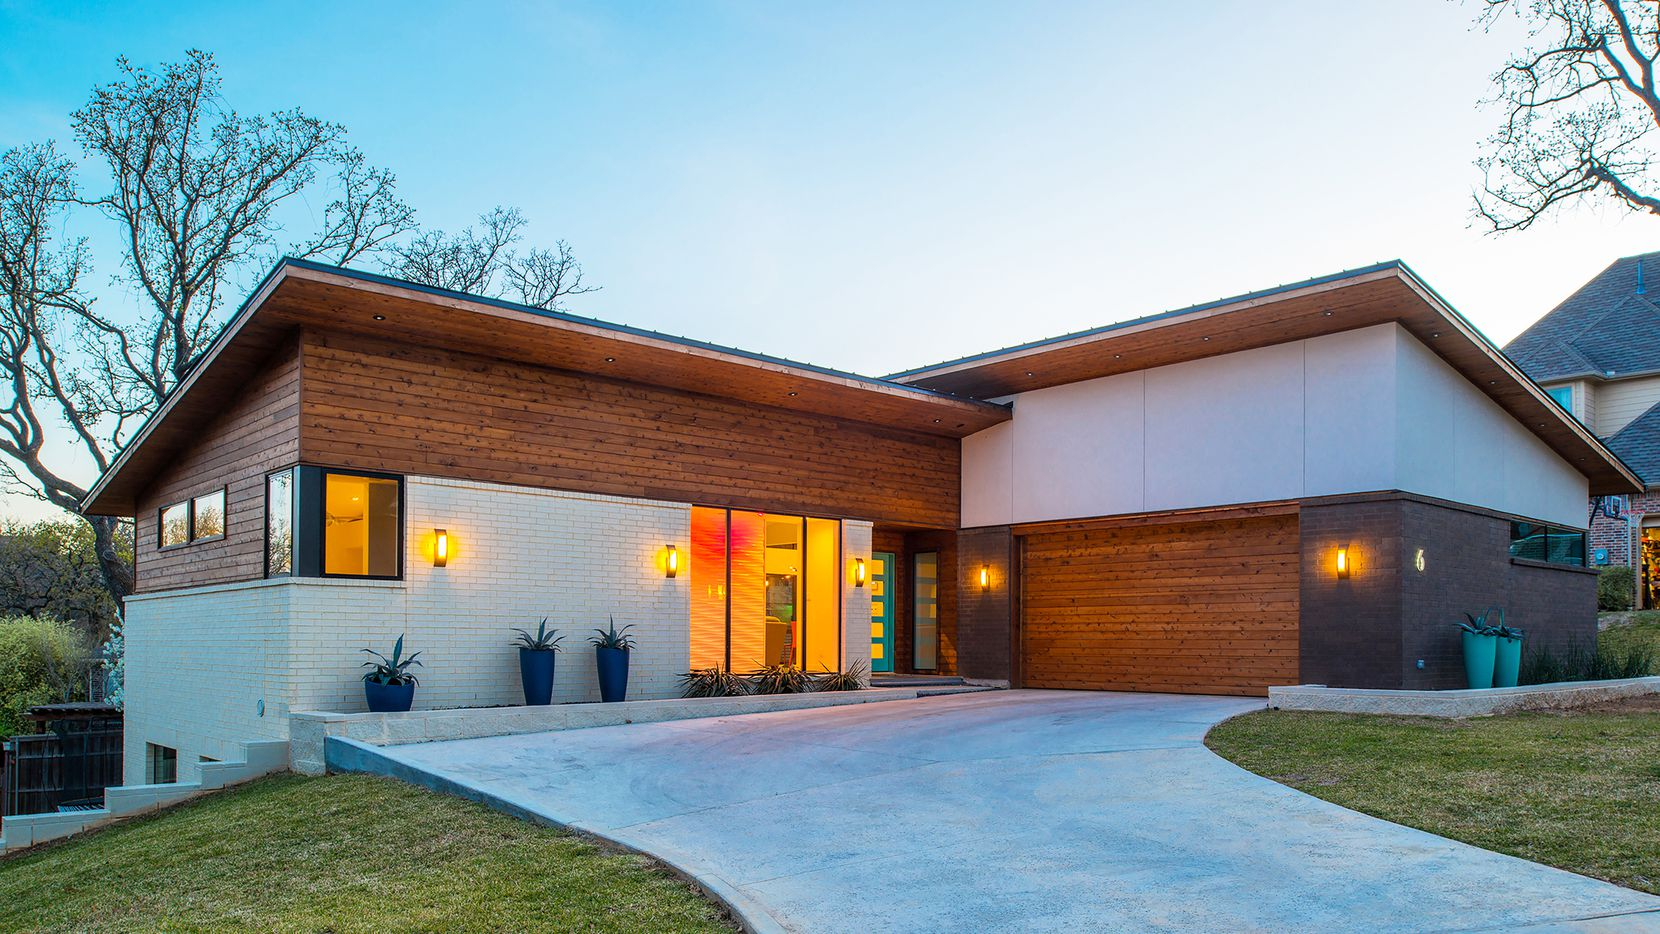 The residence at 6 Shady Oaks Court in Trophy Club was the dream of architect/builder Marc Frame of TexMod Homes and his wife, Emily.